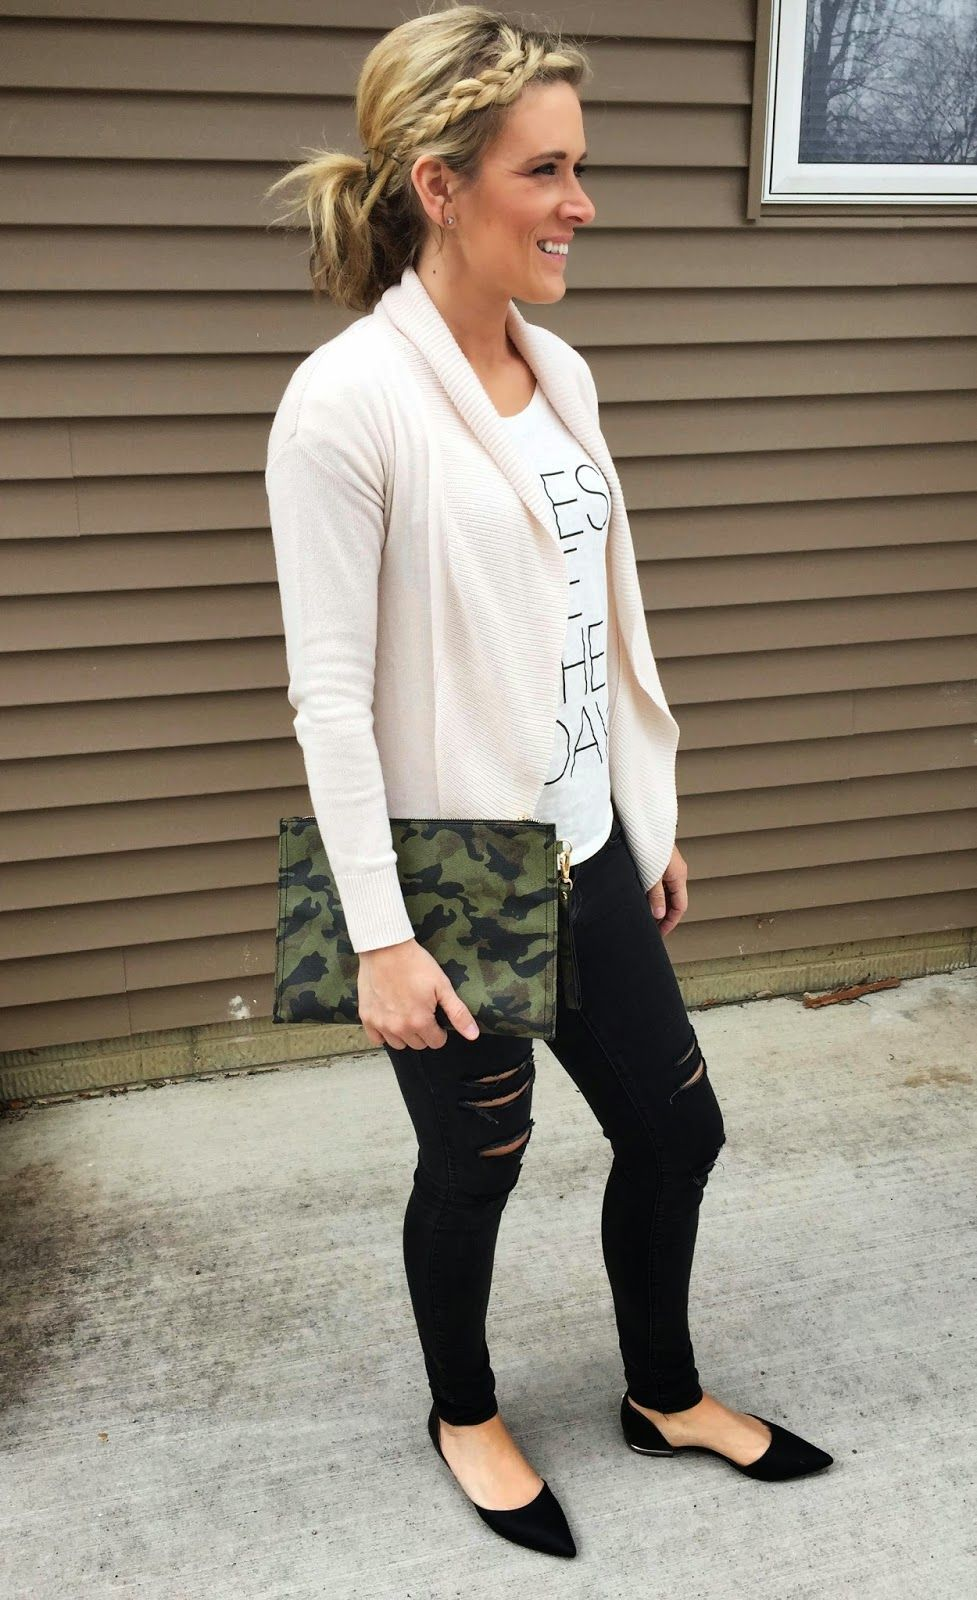 608d58a7f263 everyday uniform, stay at home mom outfit, casual spring outfit, camo clutch